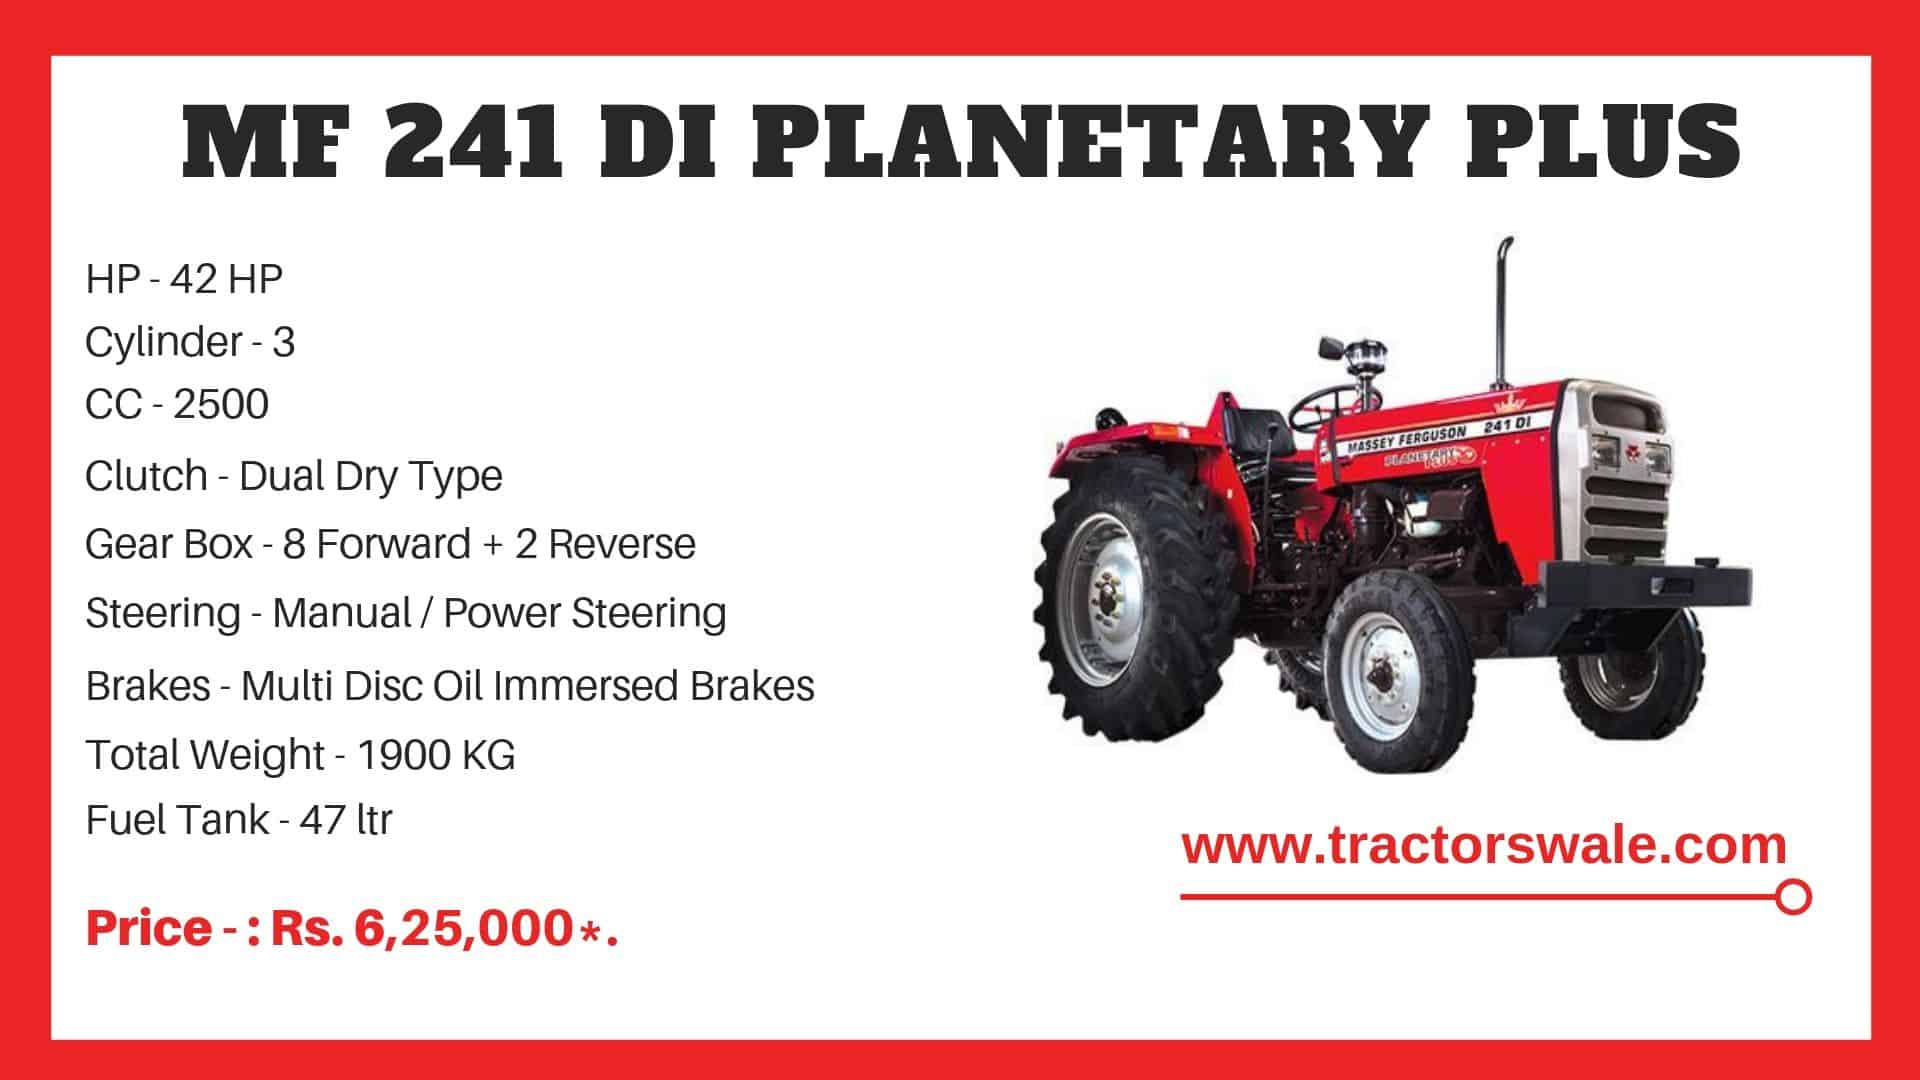 Specifications Of Massey Ferguson 241 DI planetary plus